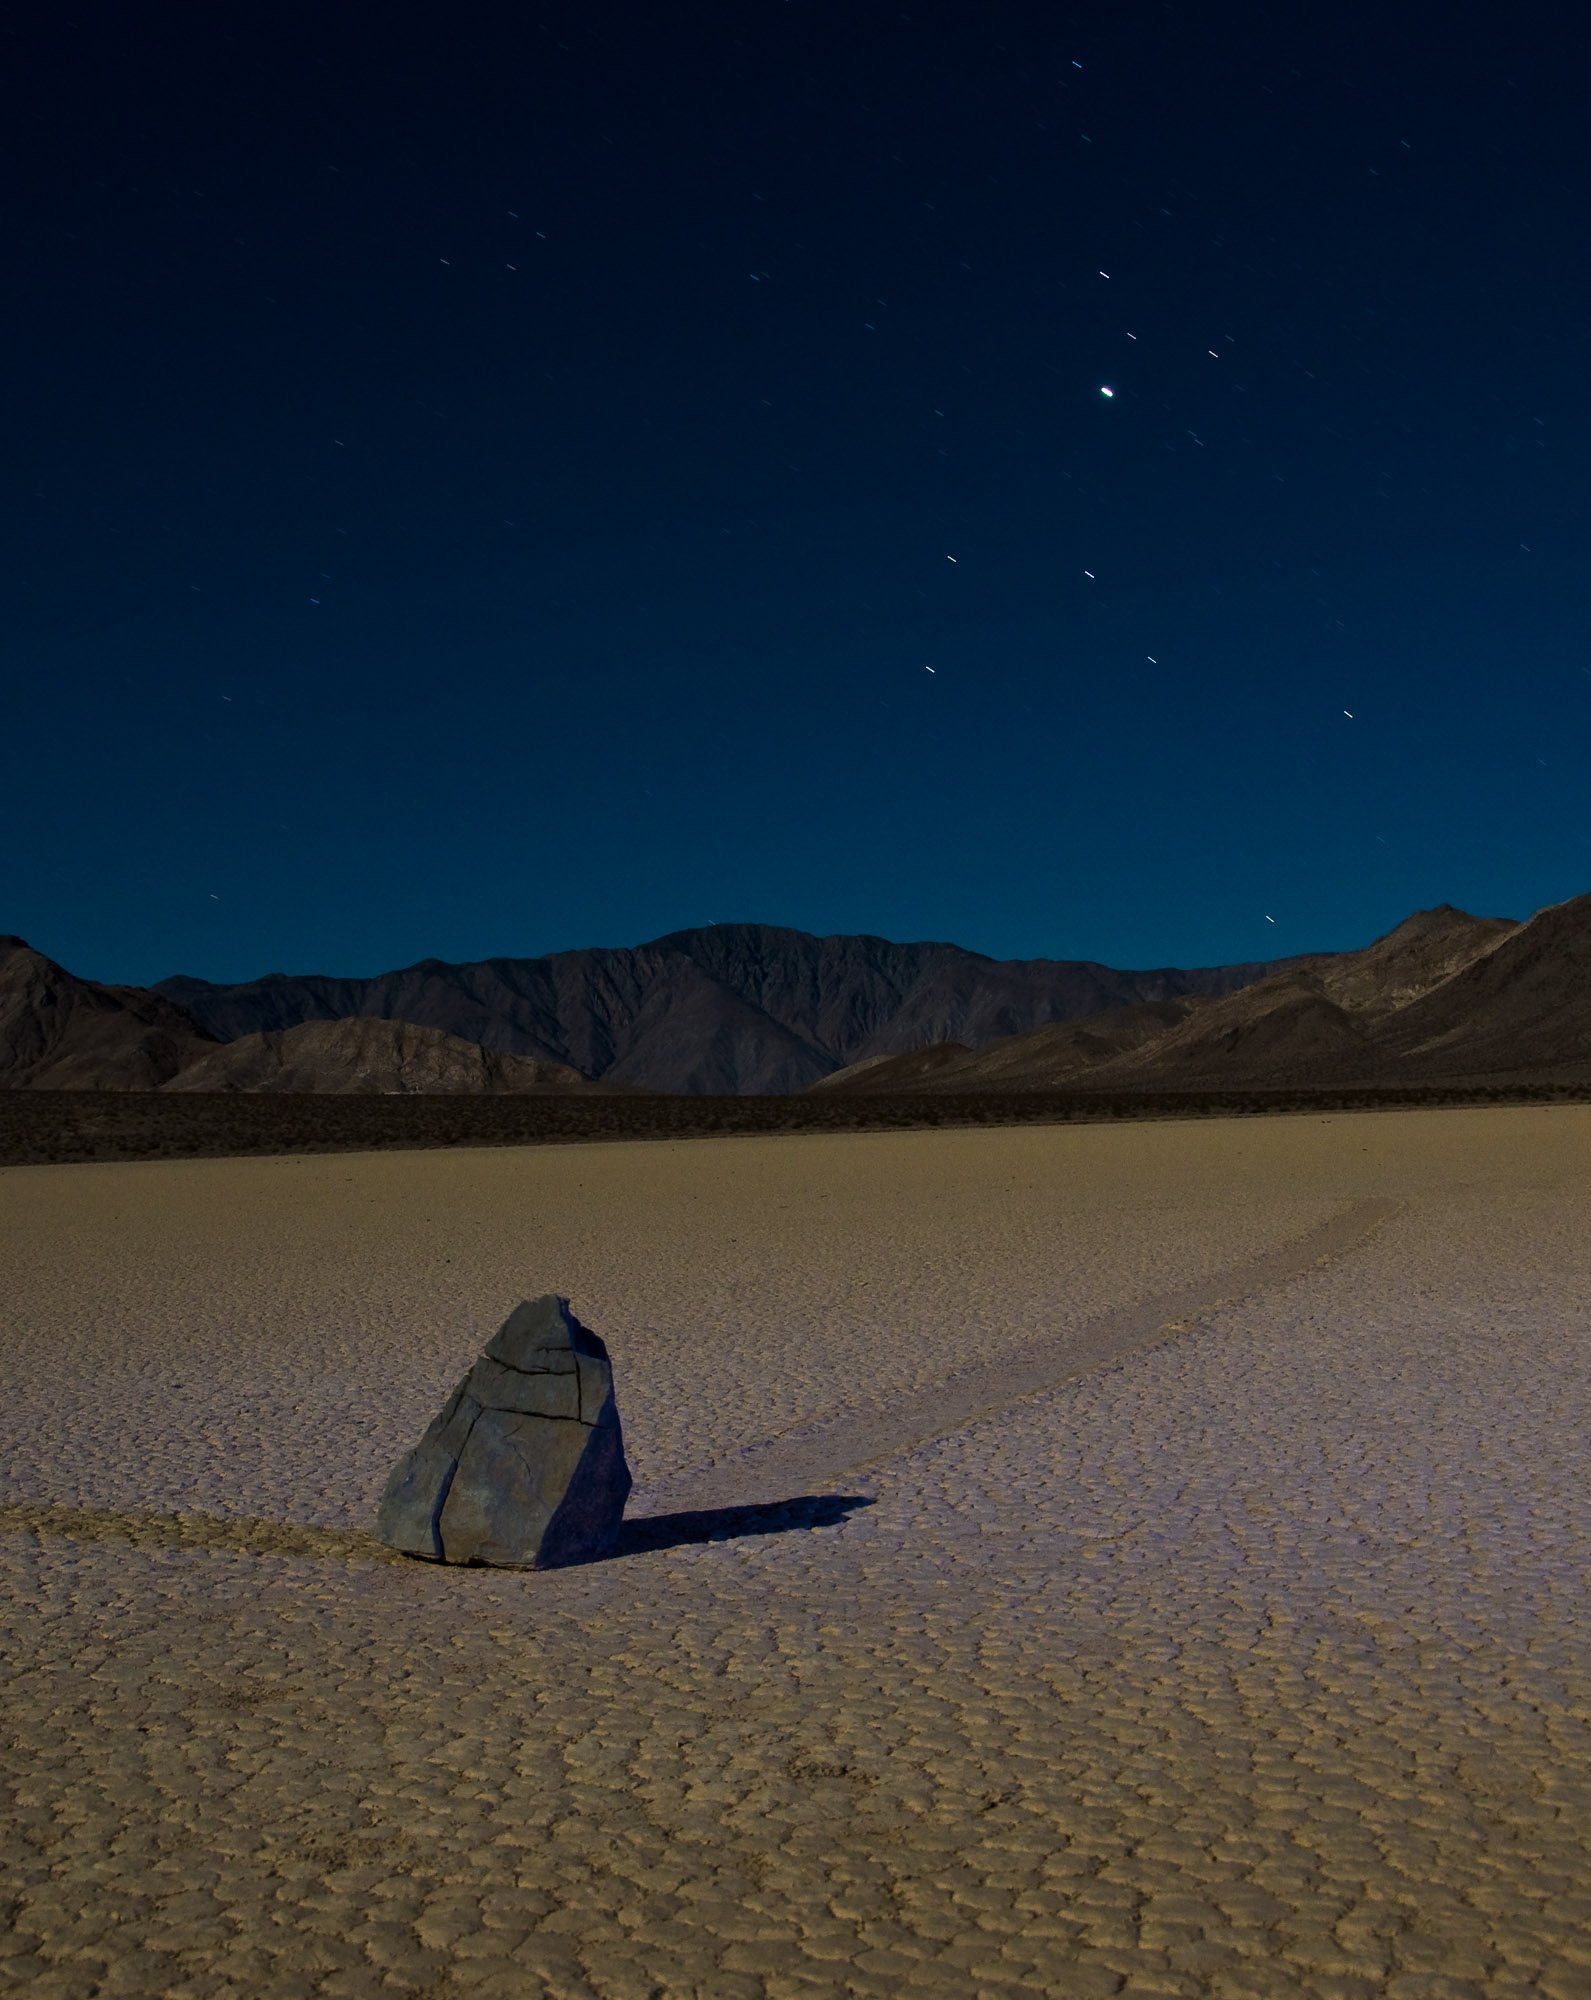 Sailing stone by moonlight - The Racetrack, Death Valley National Park, California